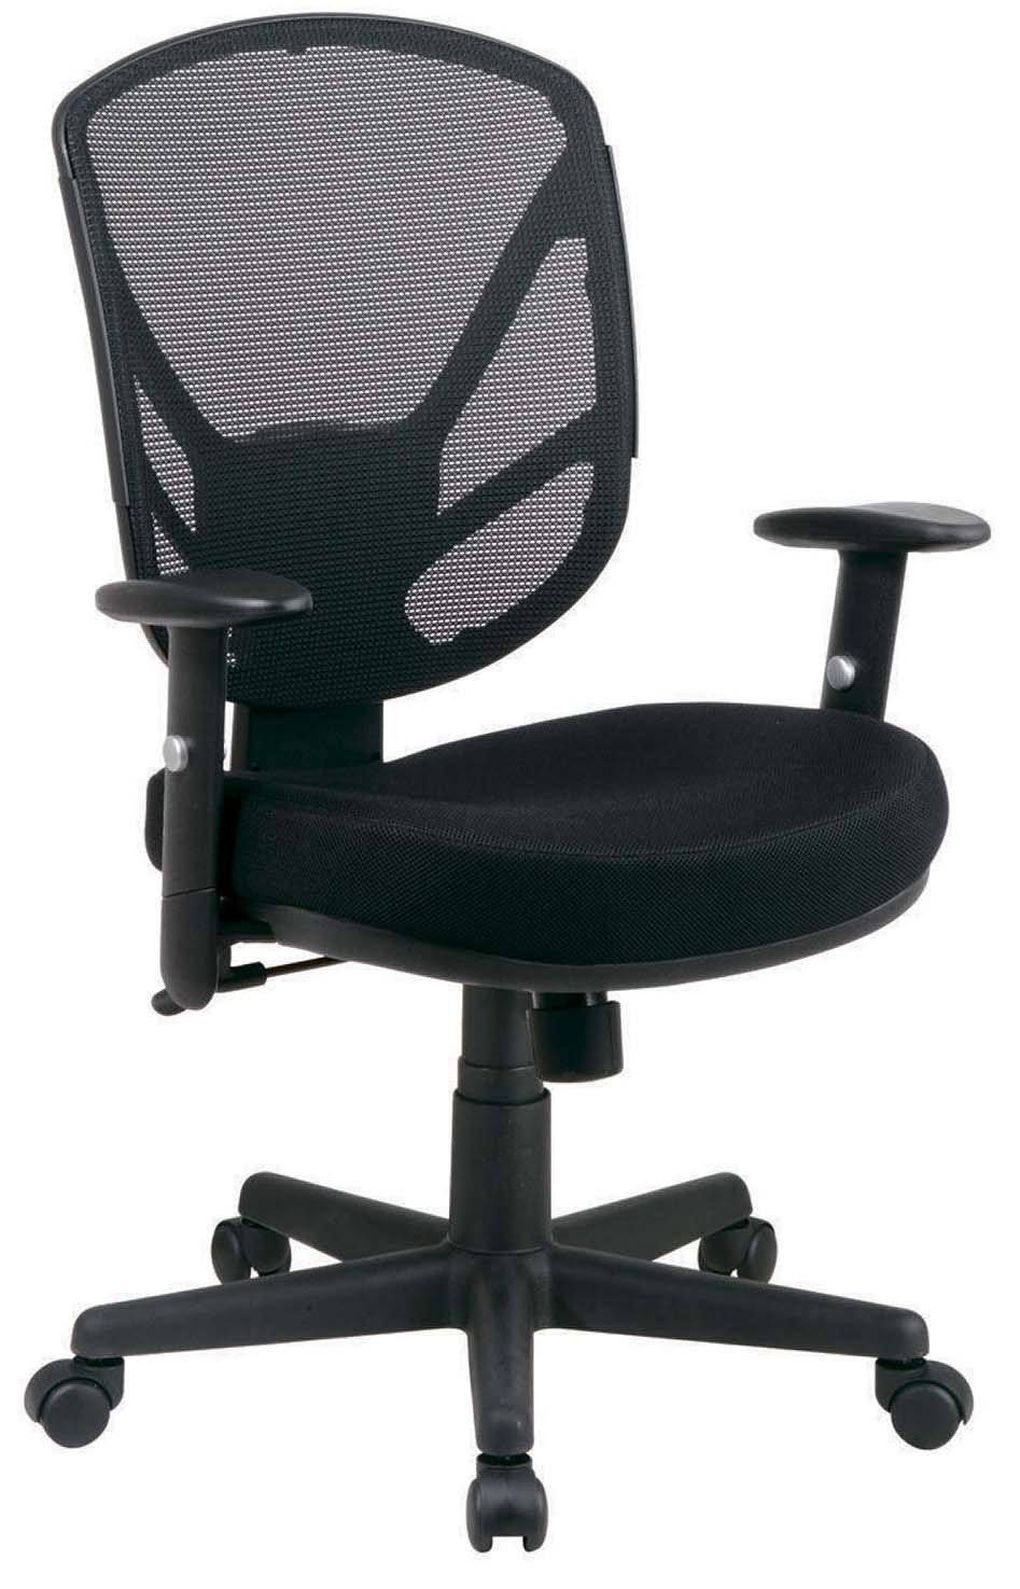 staples task chair canada desk dinosaur three office chairs that will make you want to work the globe and mail mesh offers adjustable seat arm rests centre tilt movement